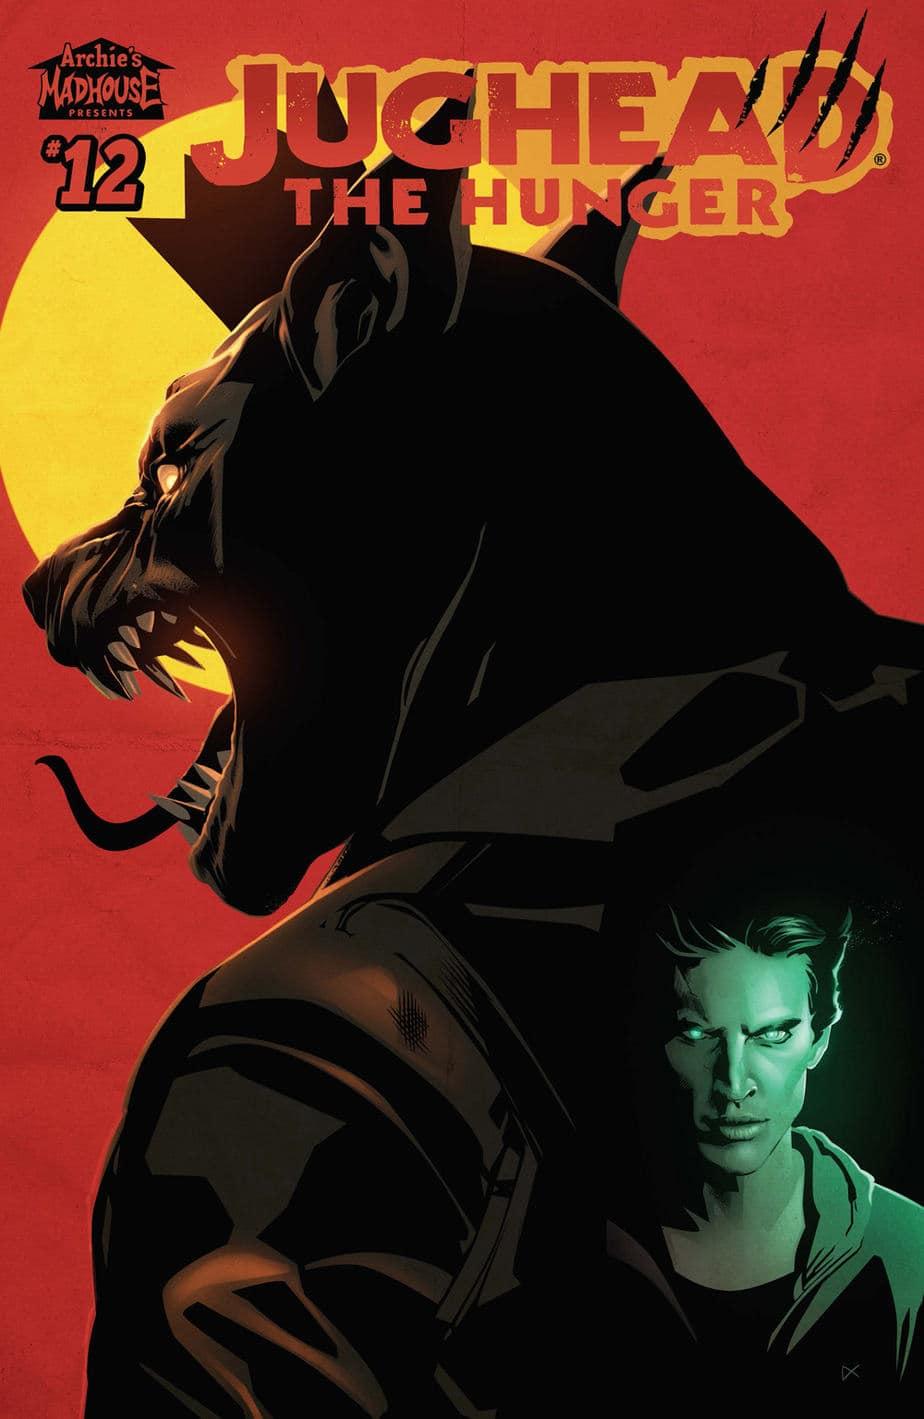 Jughead: The Hunger #12 - Variant Cover by Dennis Calero